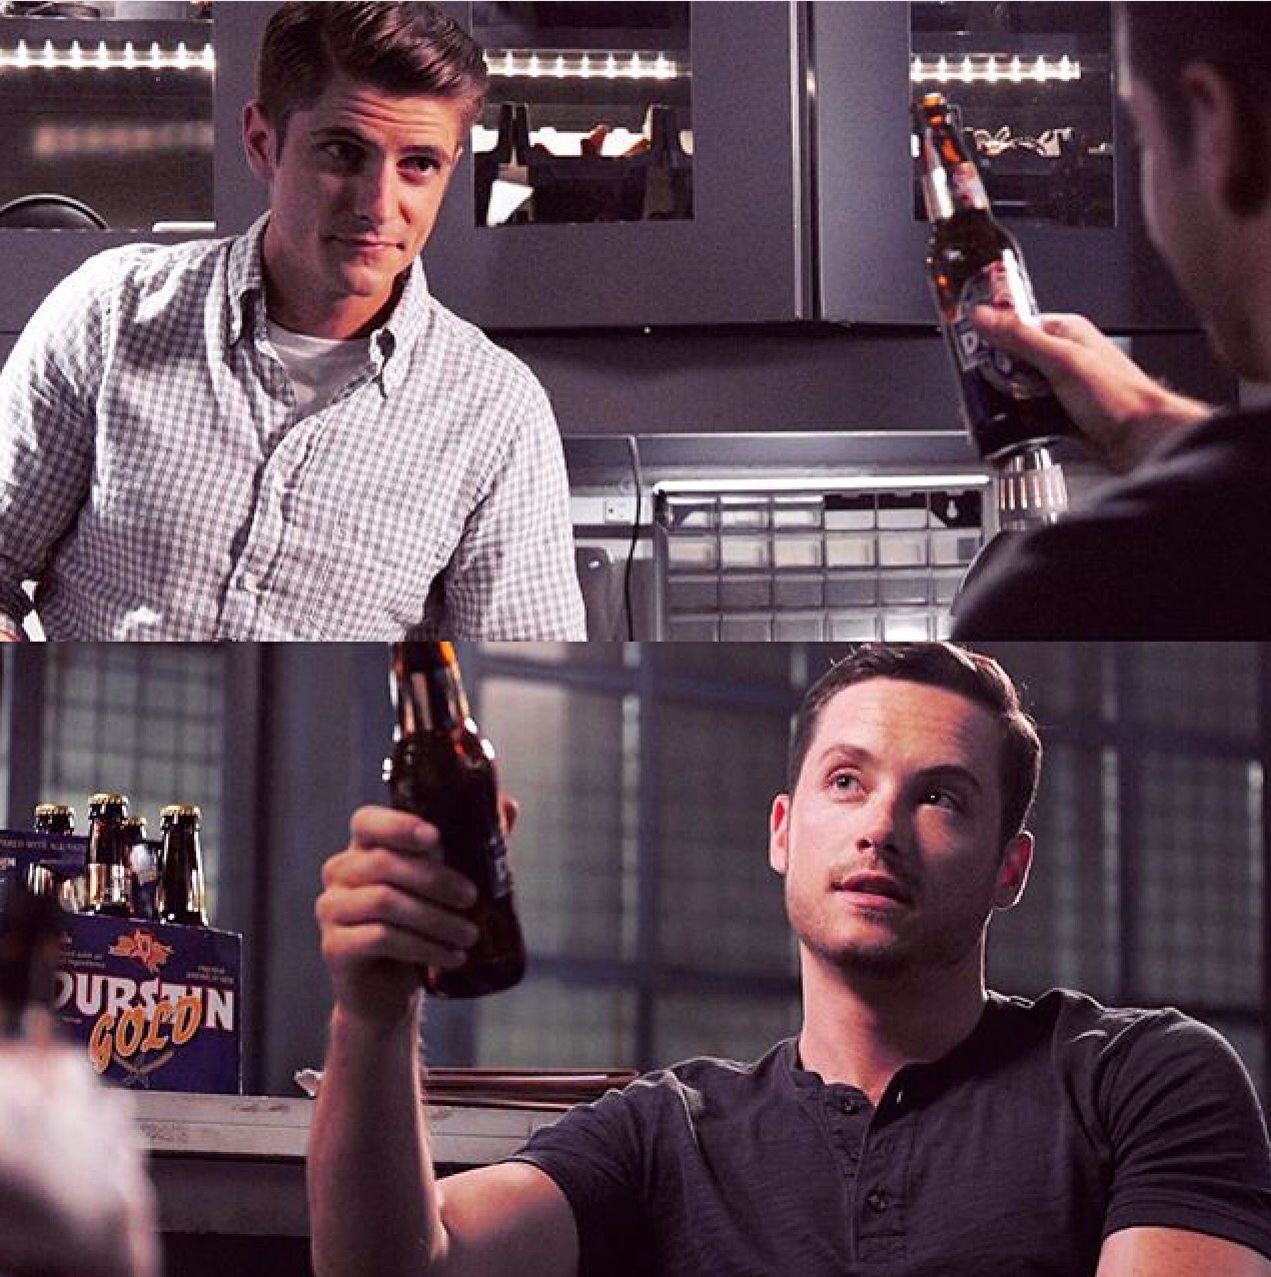 Halstead & Mouse. Chicago PD. These guys are my favorite.